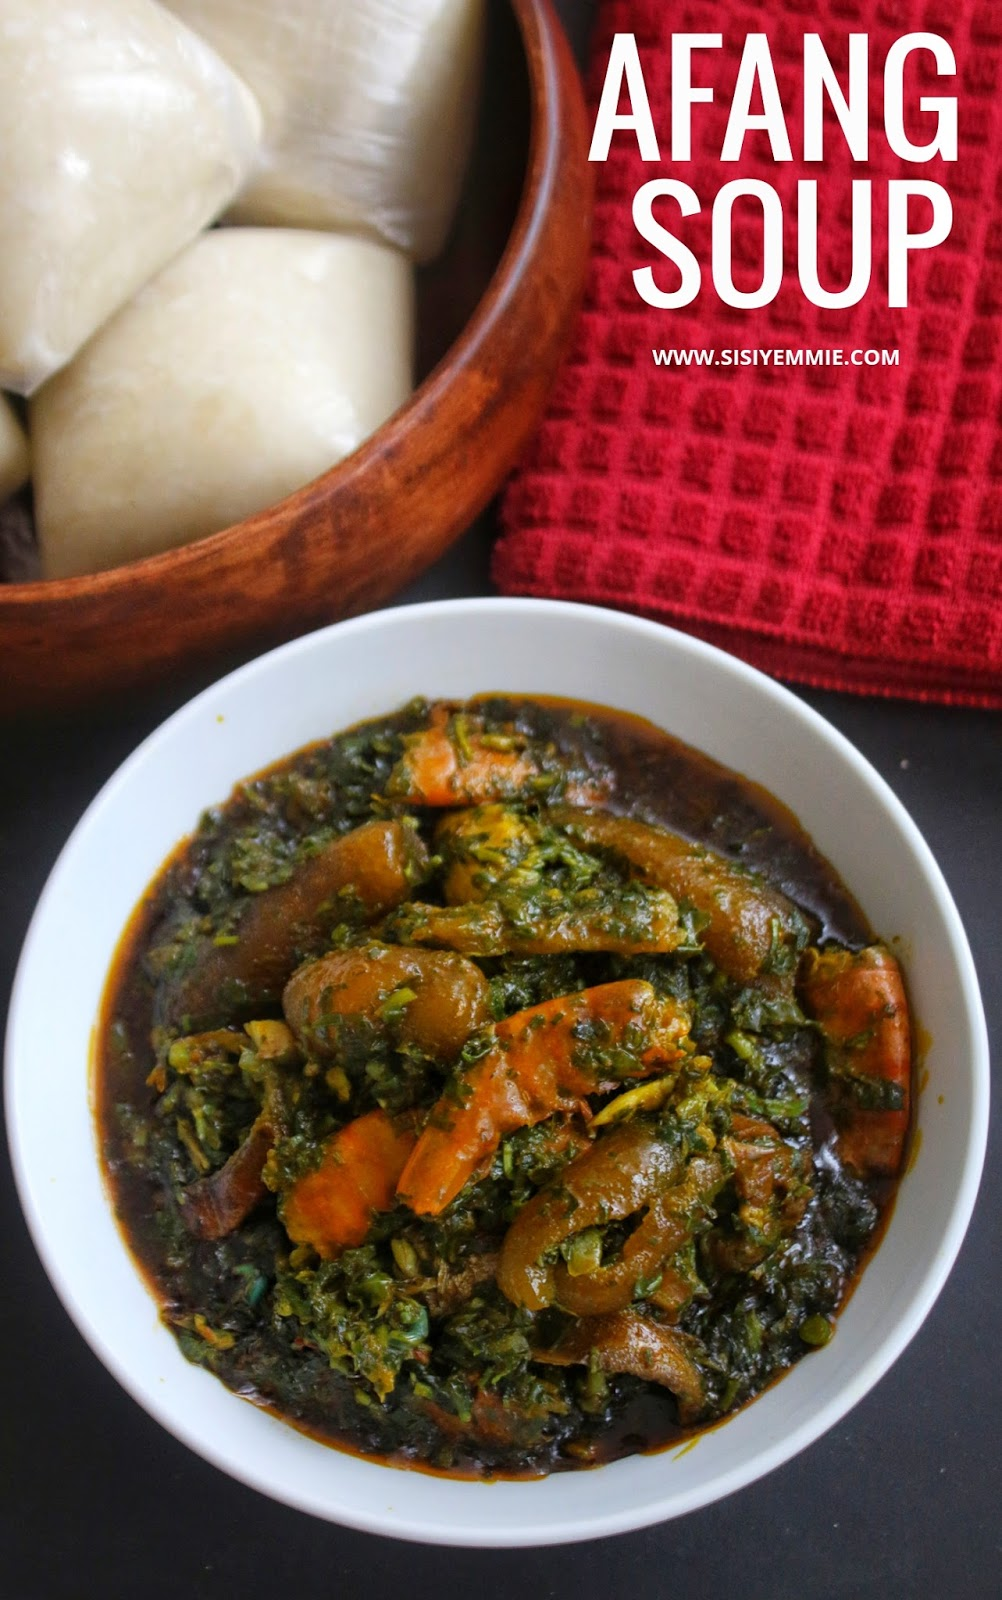 afang soup recipe by sisiyemmie - how 2Bto 2Bcook 2Bafang 2Bsoup - Afang Soup Recipe By Sisiyemmie